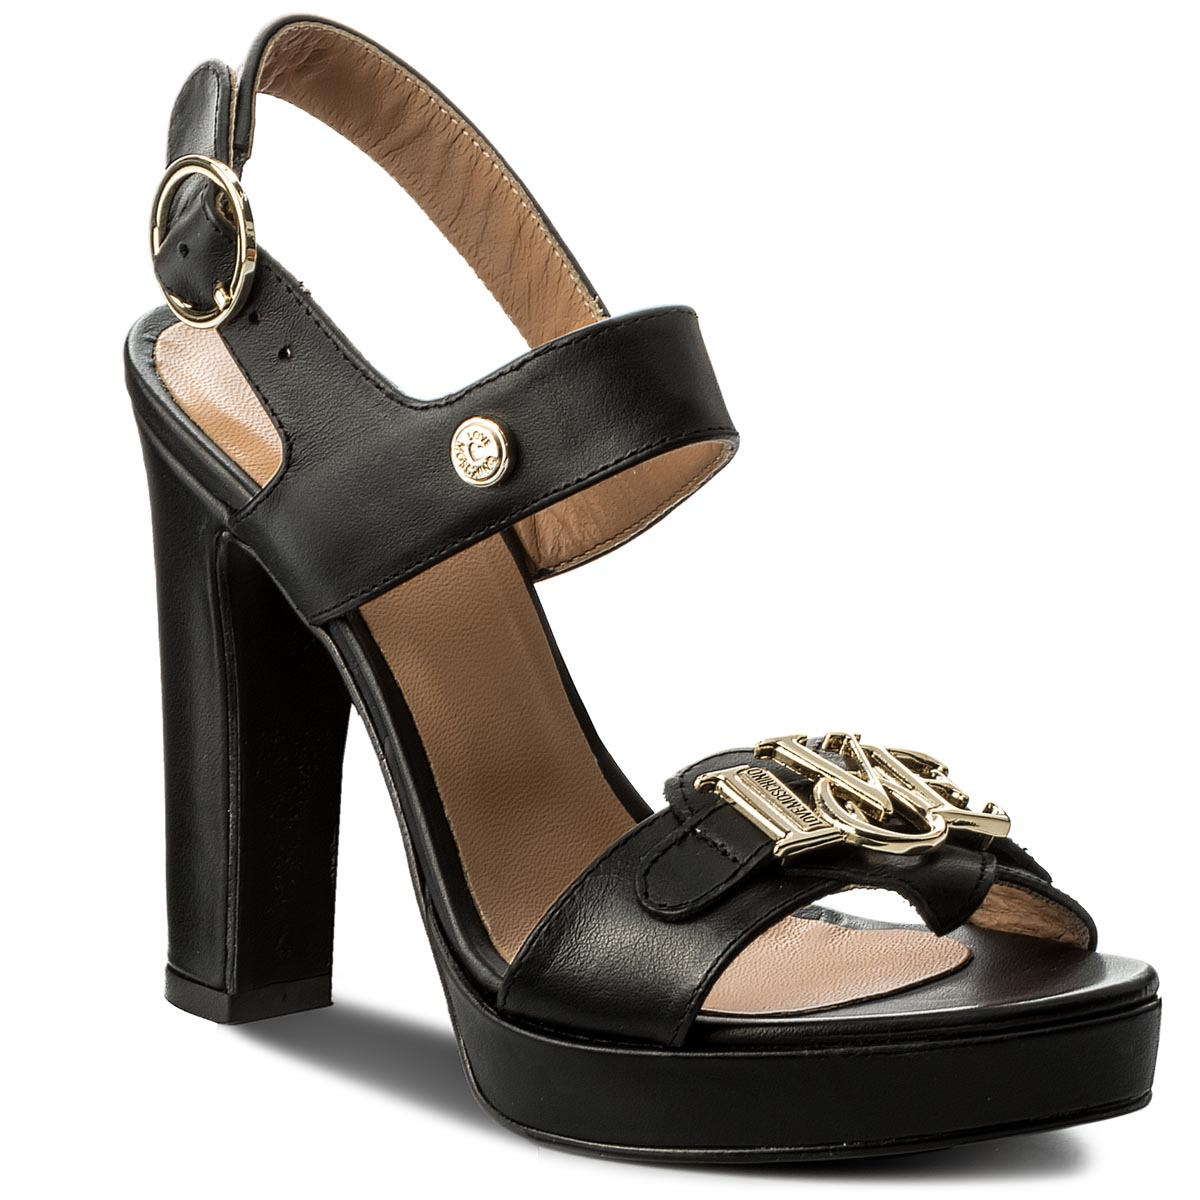 Sandale LOVE MOSCHINO - JA1621AC05JA0000 Vitello Nero